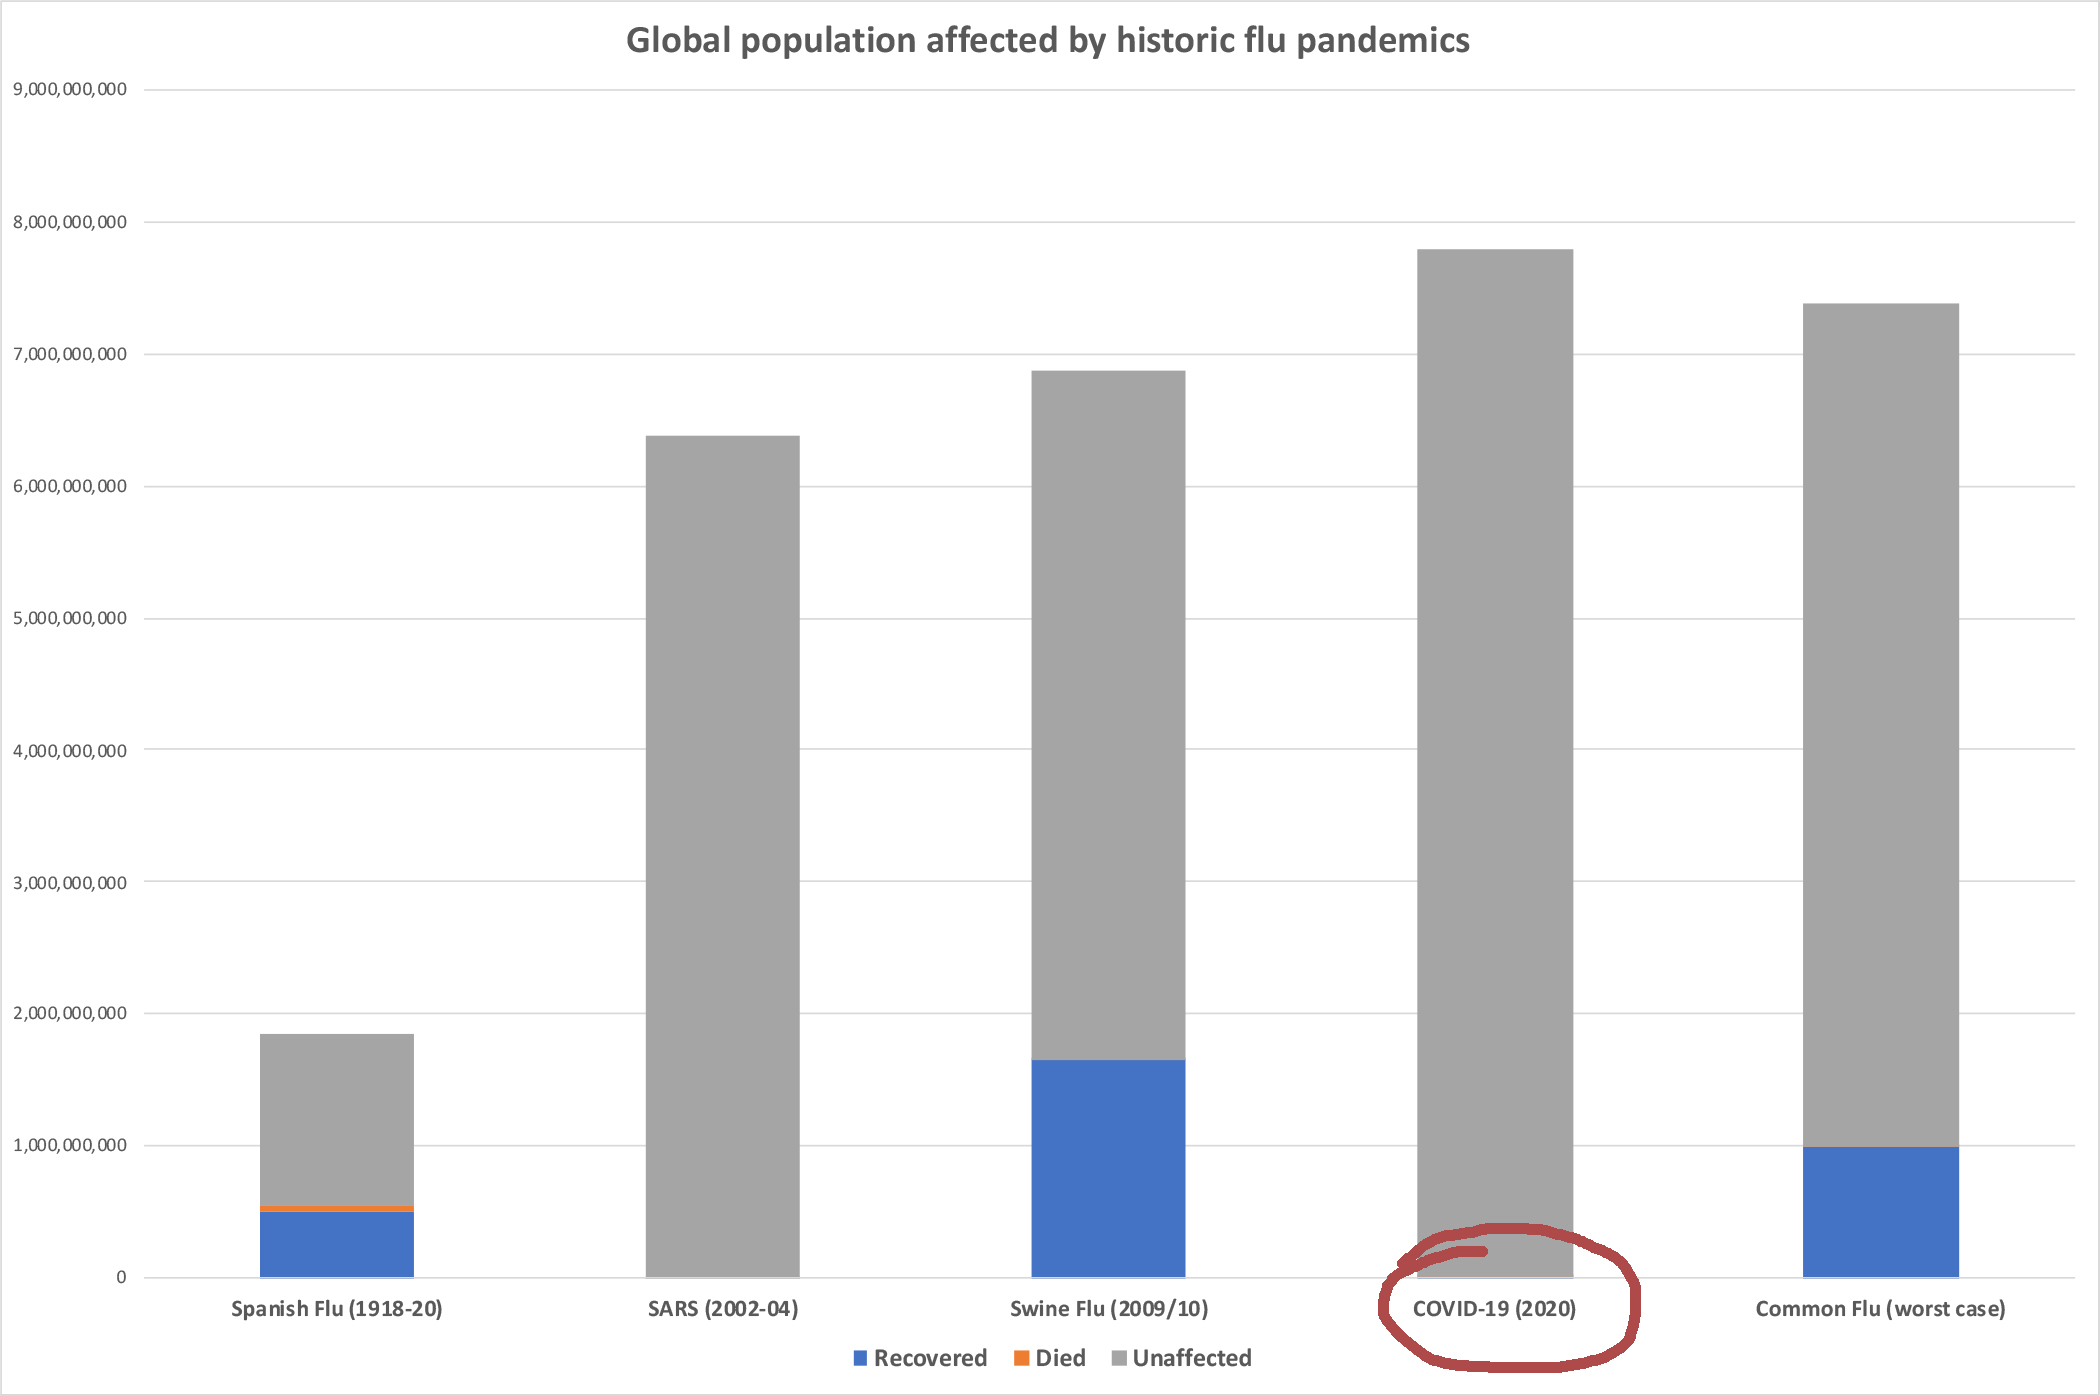 Figure 2. Comparison of the number of people affected by flu pandemics with respect to the world population.